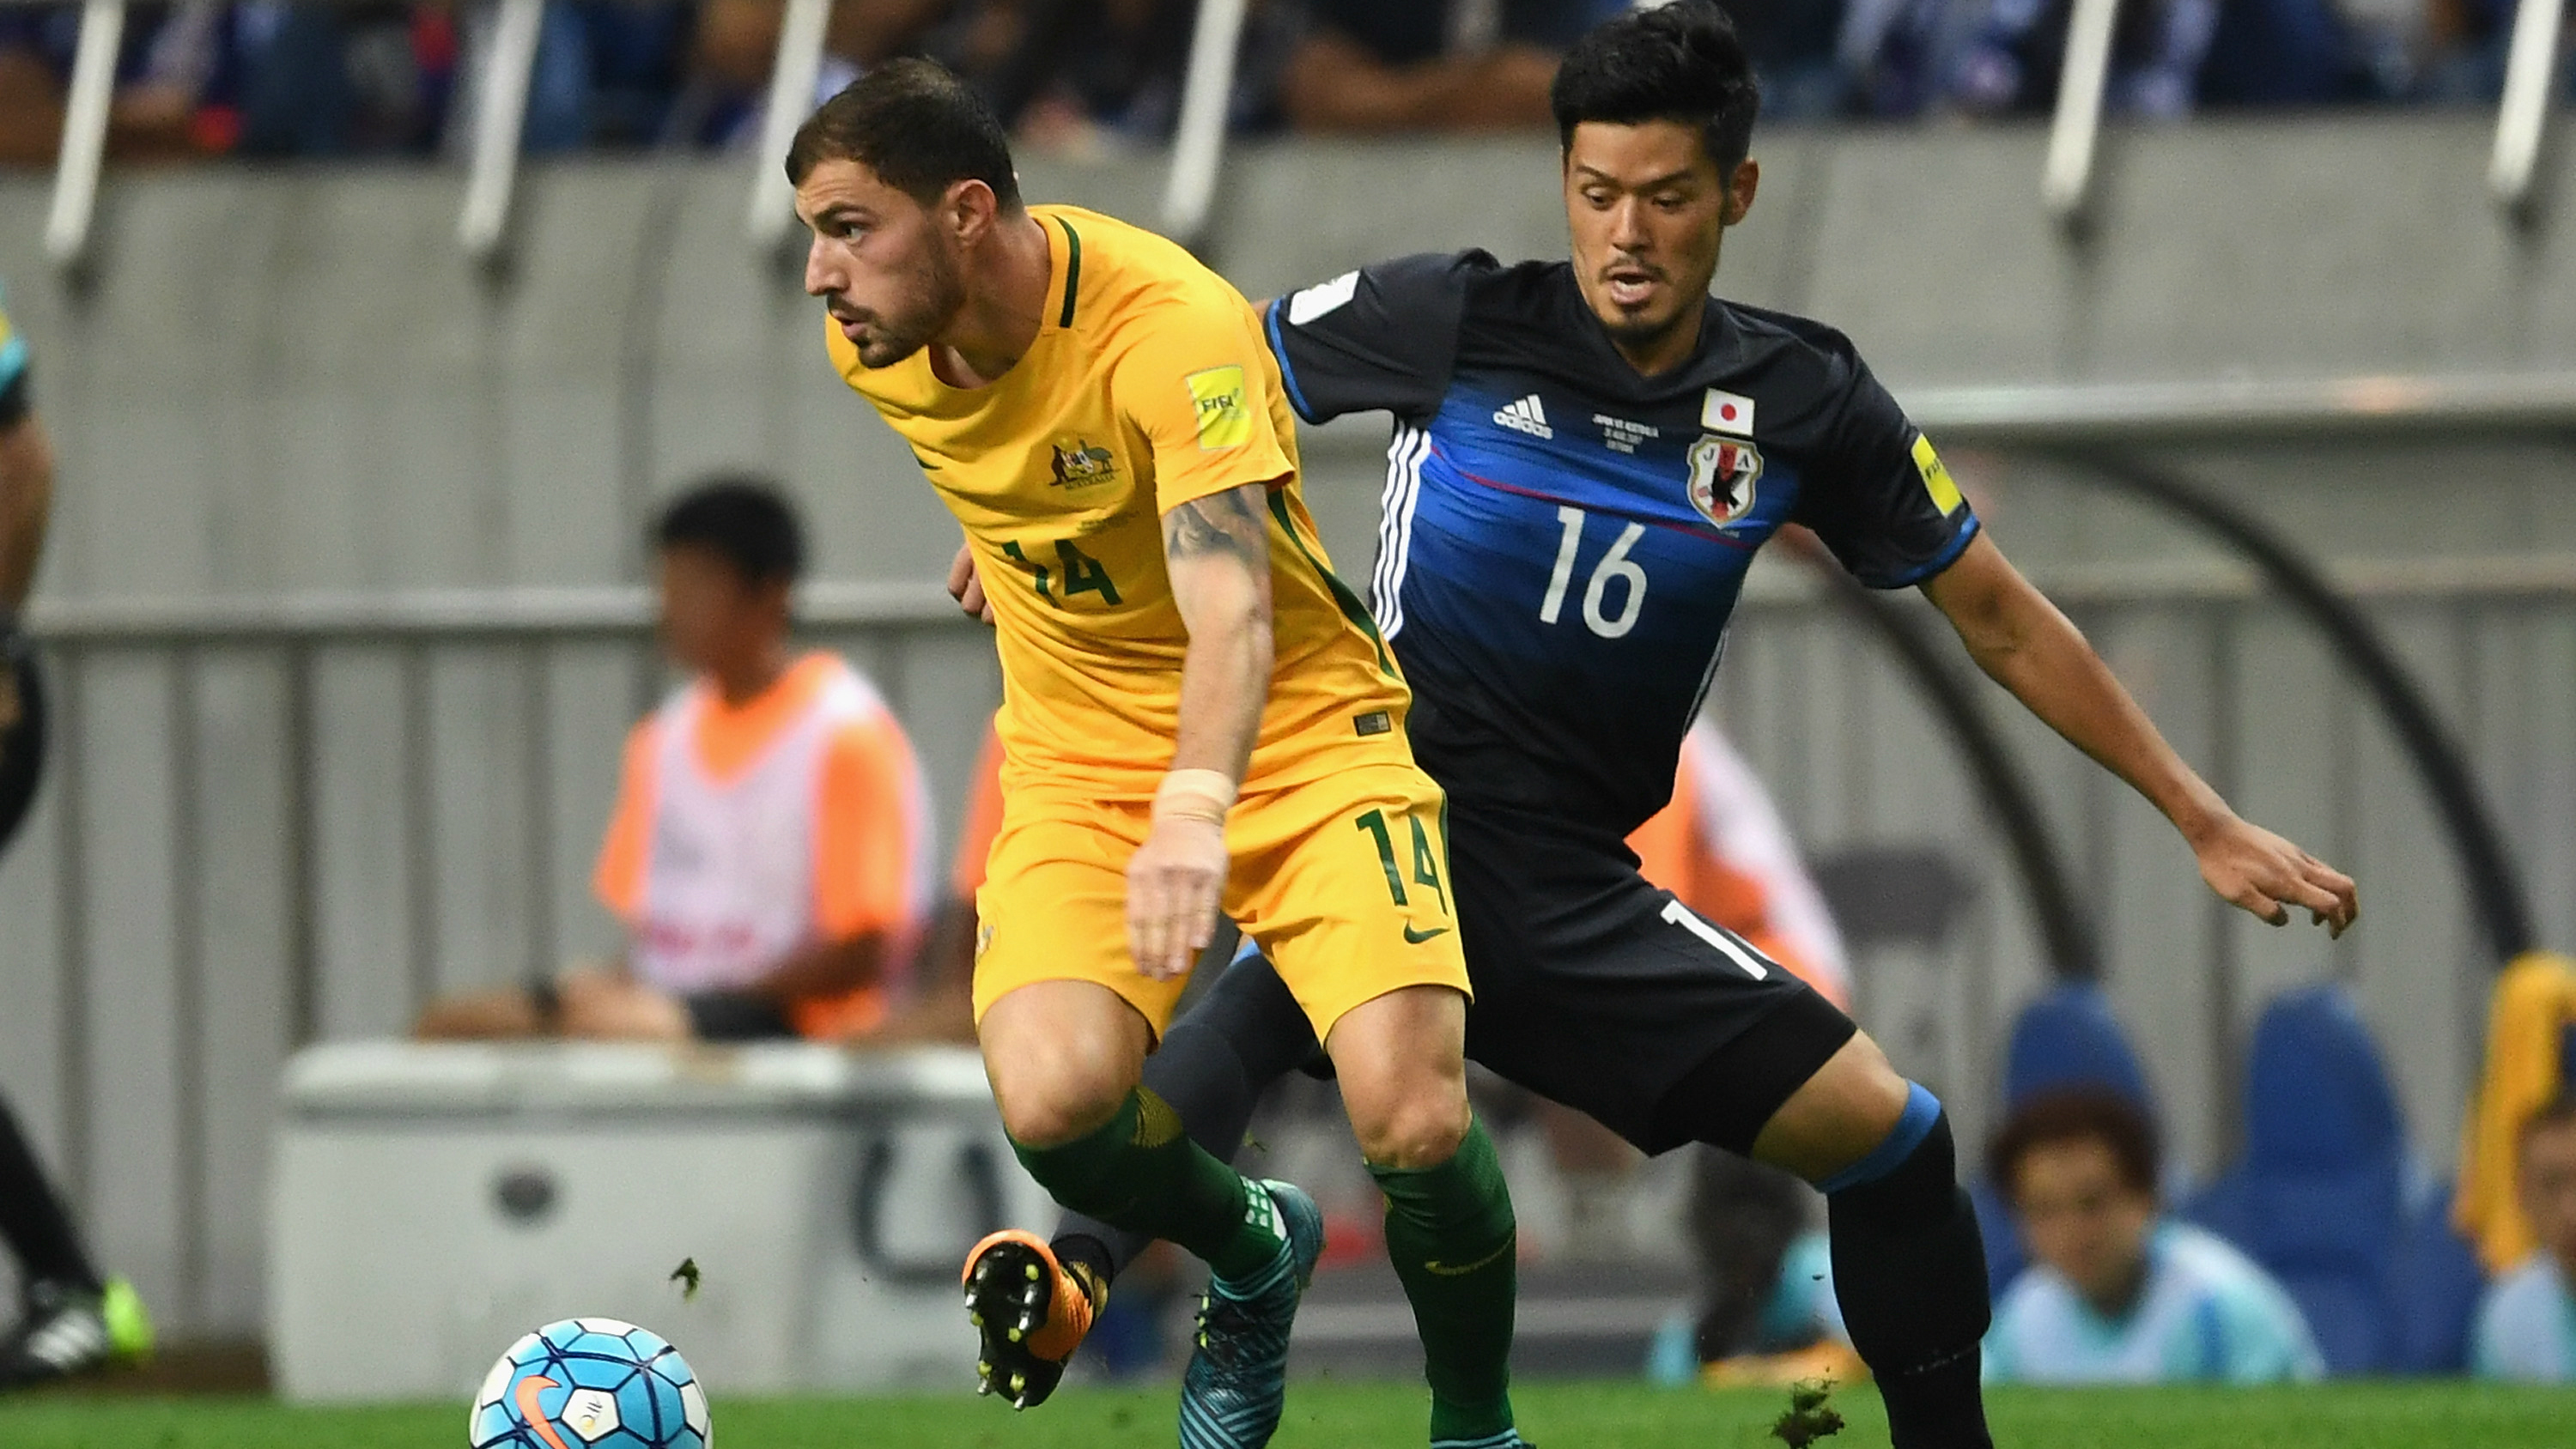 James Troisi looks to wriggle clear of his marker in Australia's 2-0 loss to Japan.